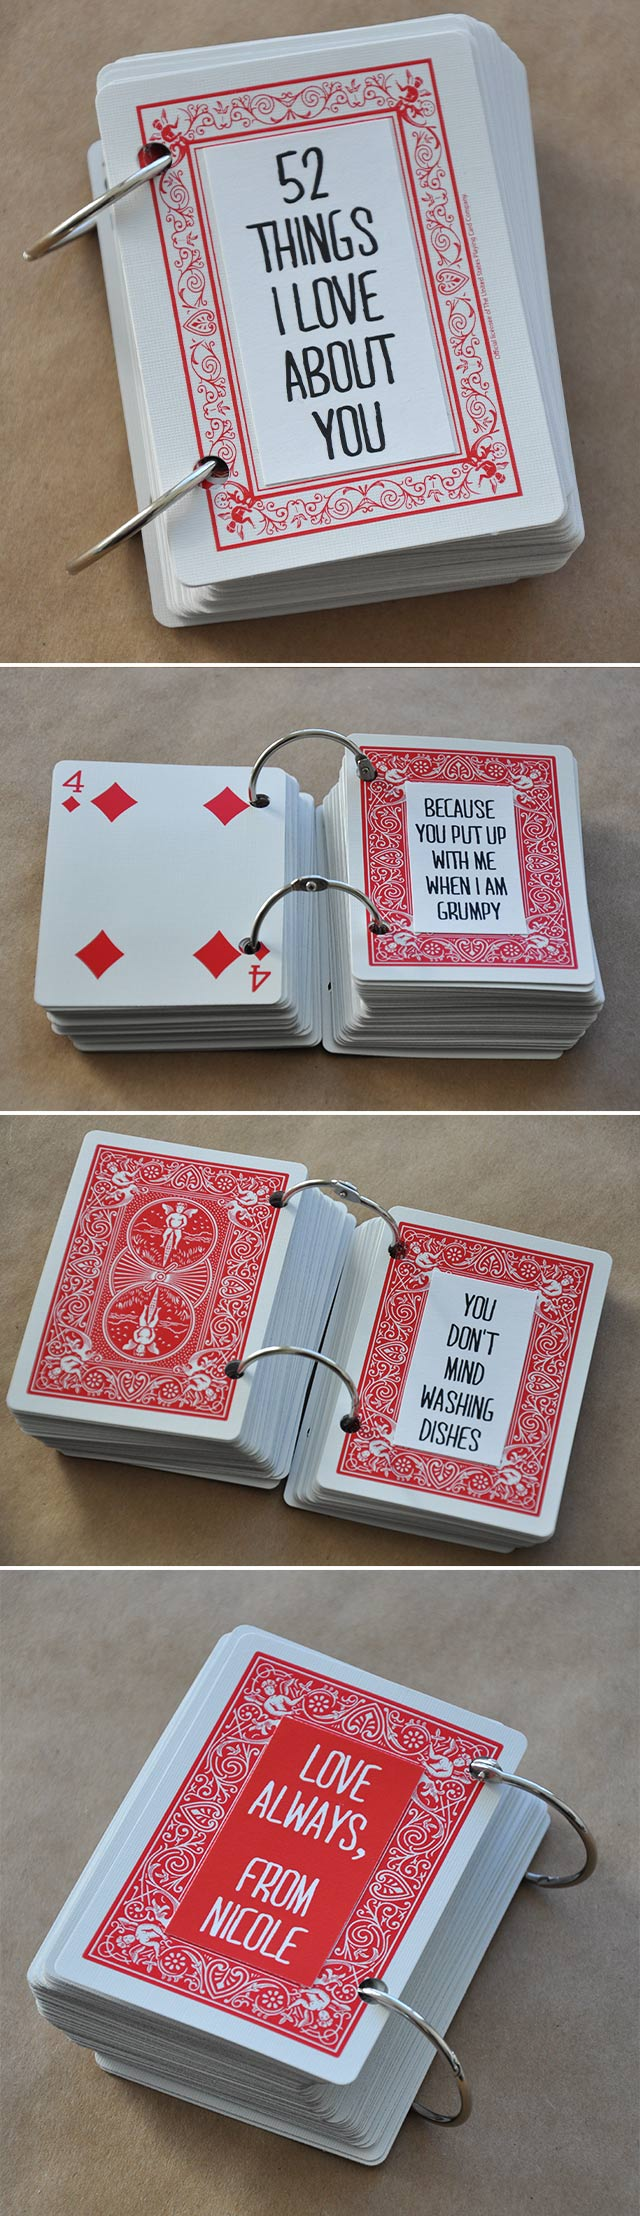 52-things-i-love-about-you-card-valentine